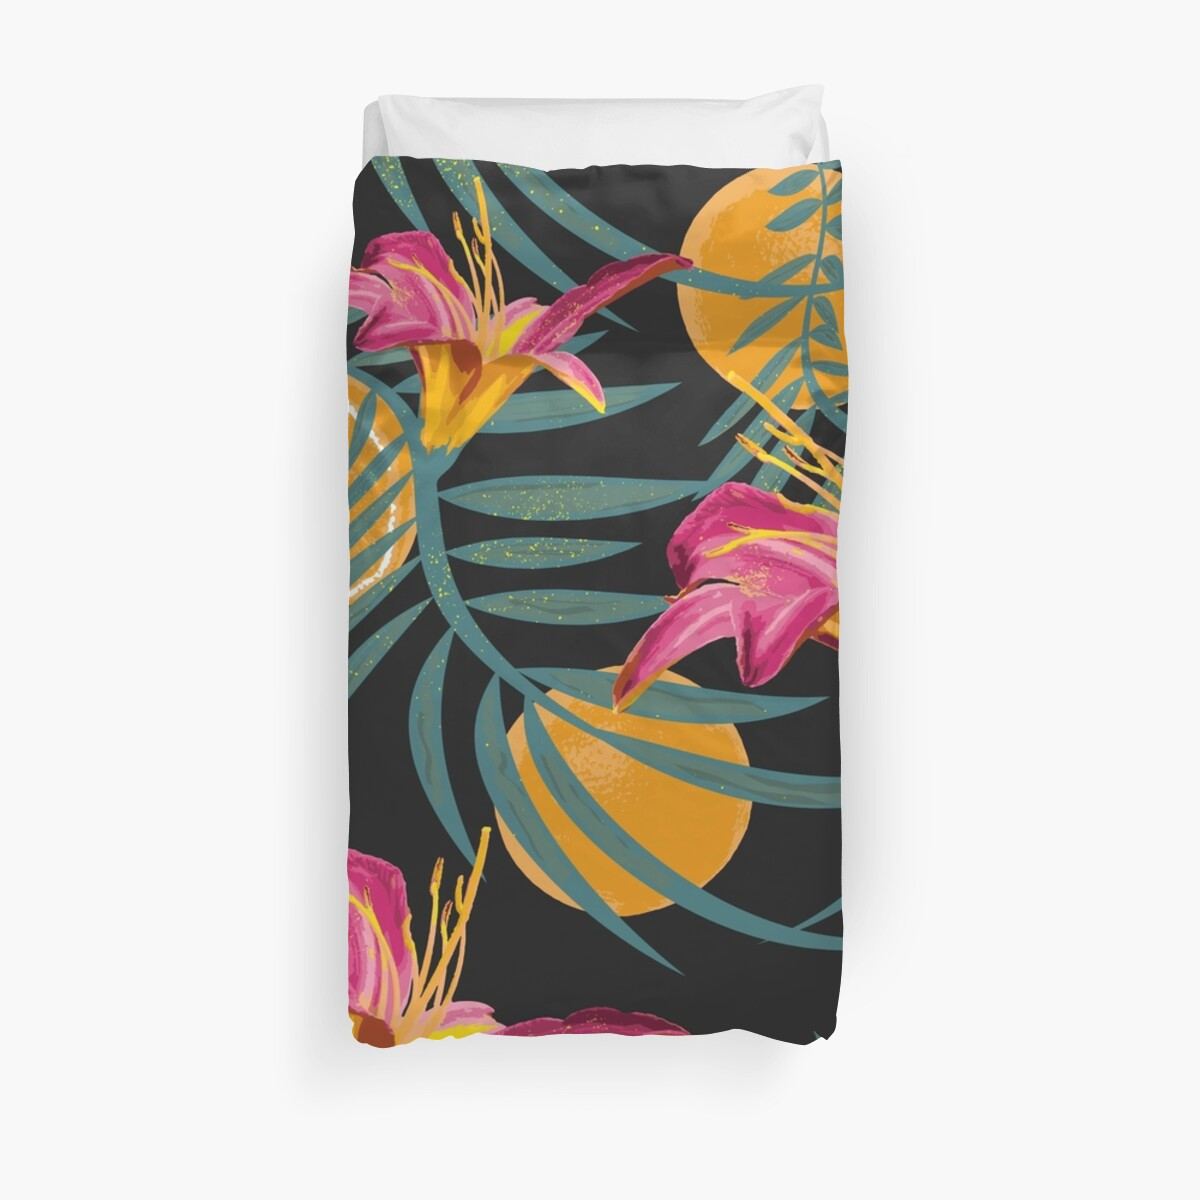 Plants Flowers and Your Orange Fruit by patternbyjensen